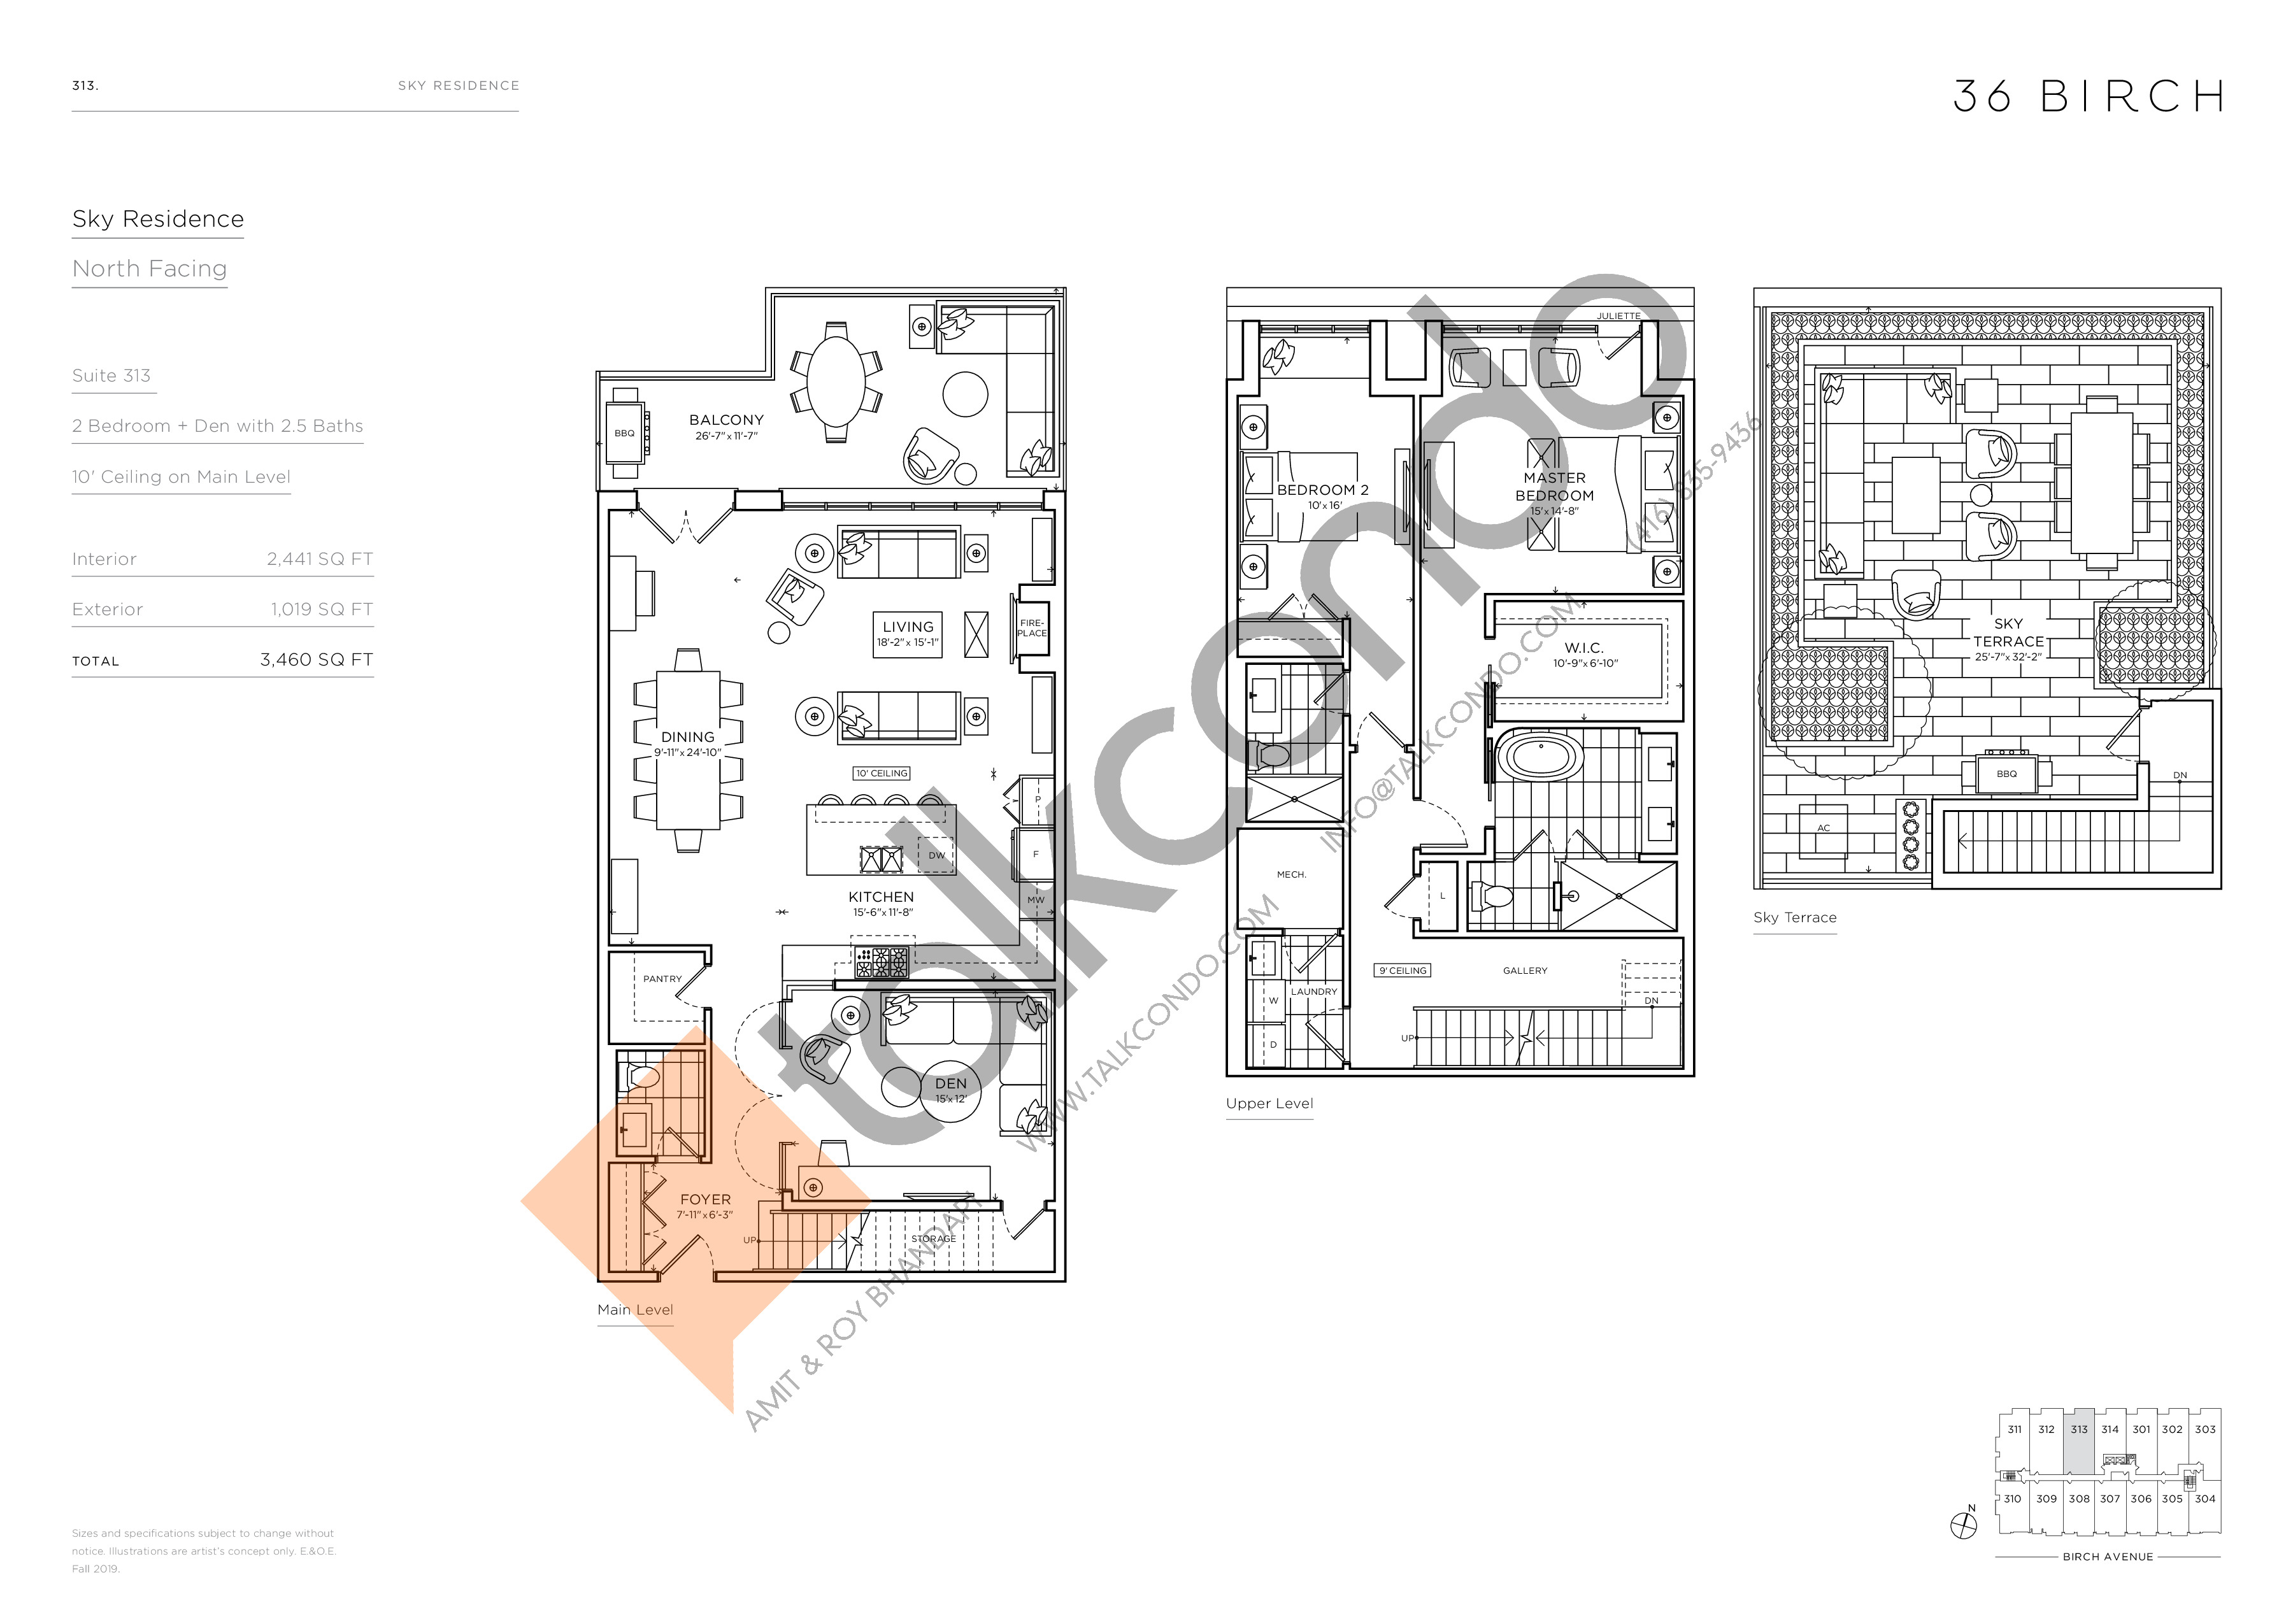 313 - Sky Residence Floor Plan at 36 Birch Avenue Condos - 2441 sq.ft